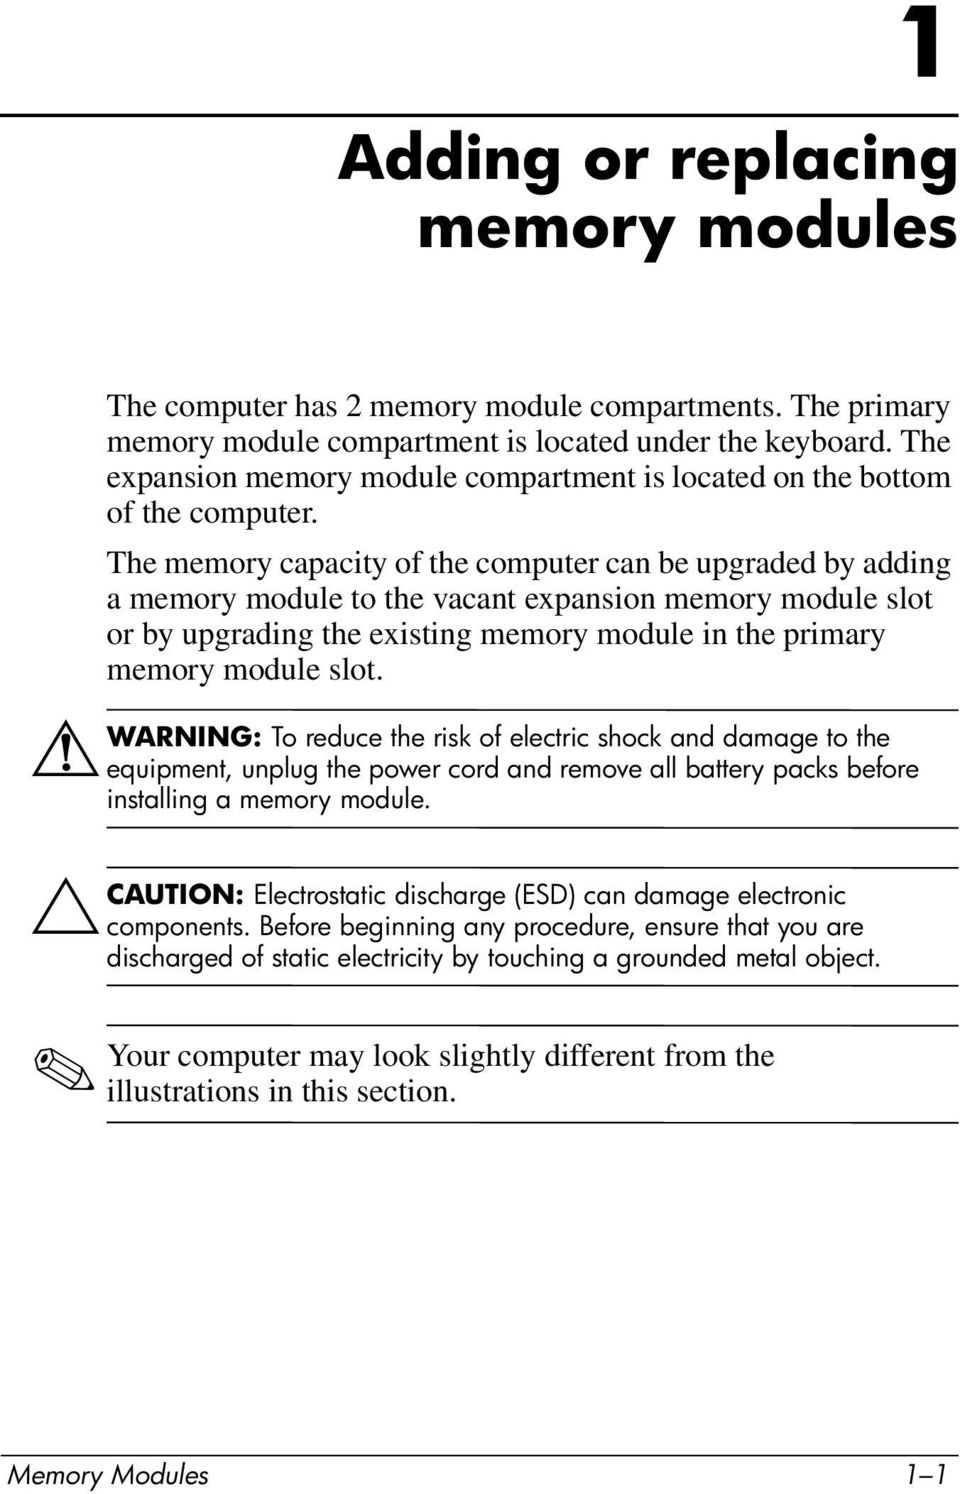 The memory capacity of the computer can be upgraded by adding a memory module to the vacant expansion memory module slot or by upgrading the existing memory module in the primary memory module slot.